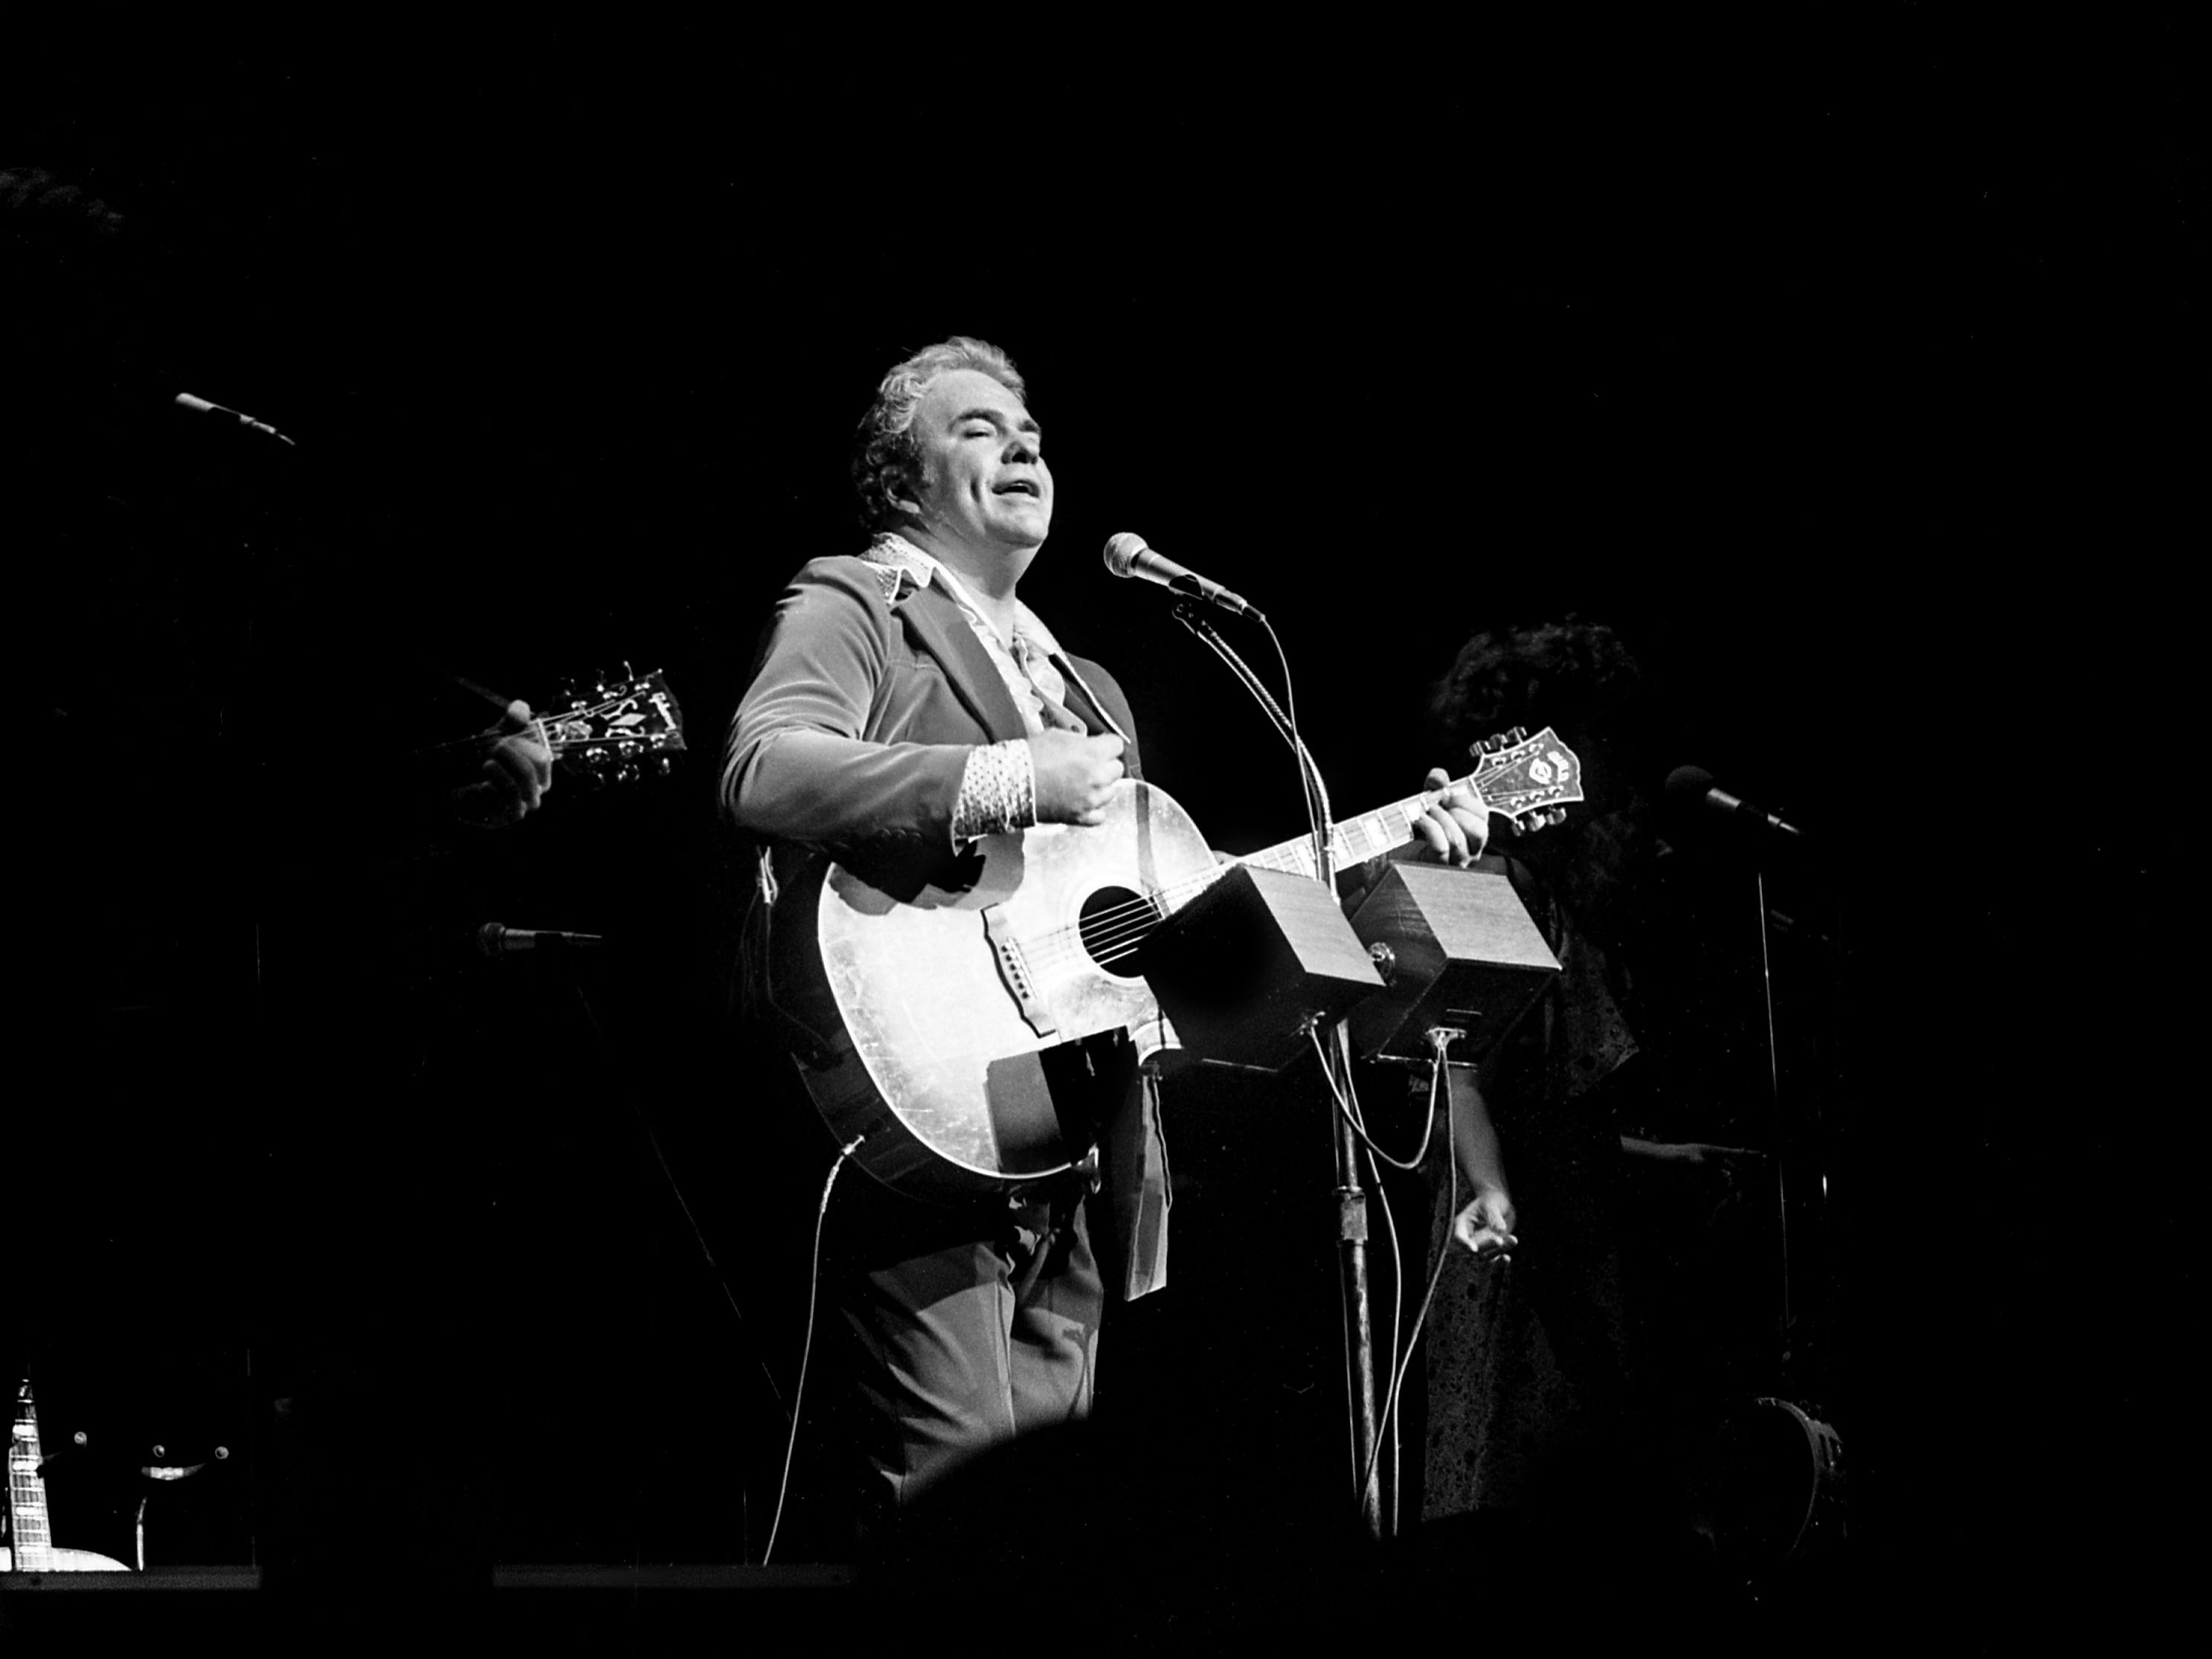 Singer-songwriter Hoyt Axton finishes a song during his Halloween concert at the Grand Ole Opry House on Oct. 31, 1978.